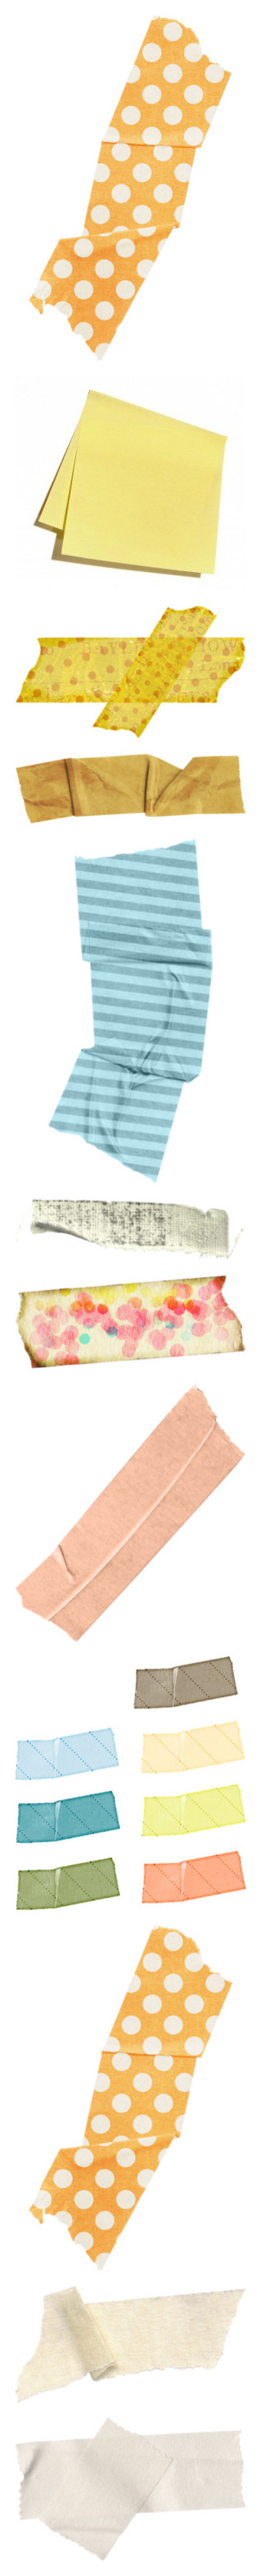 """""""tape & paper"""" by little-dojinbar ❤ liked on Polyvore featuring fillers, tape, effects, backgrounds, fillers - orange, detail, embellishment, yellow, マスキングテープ and filler"""